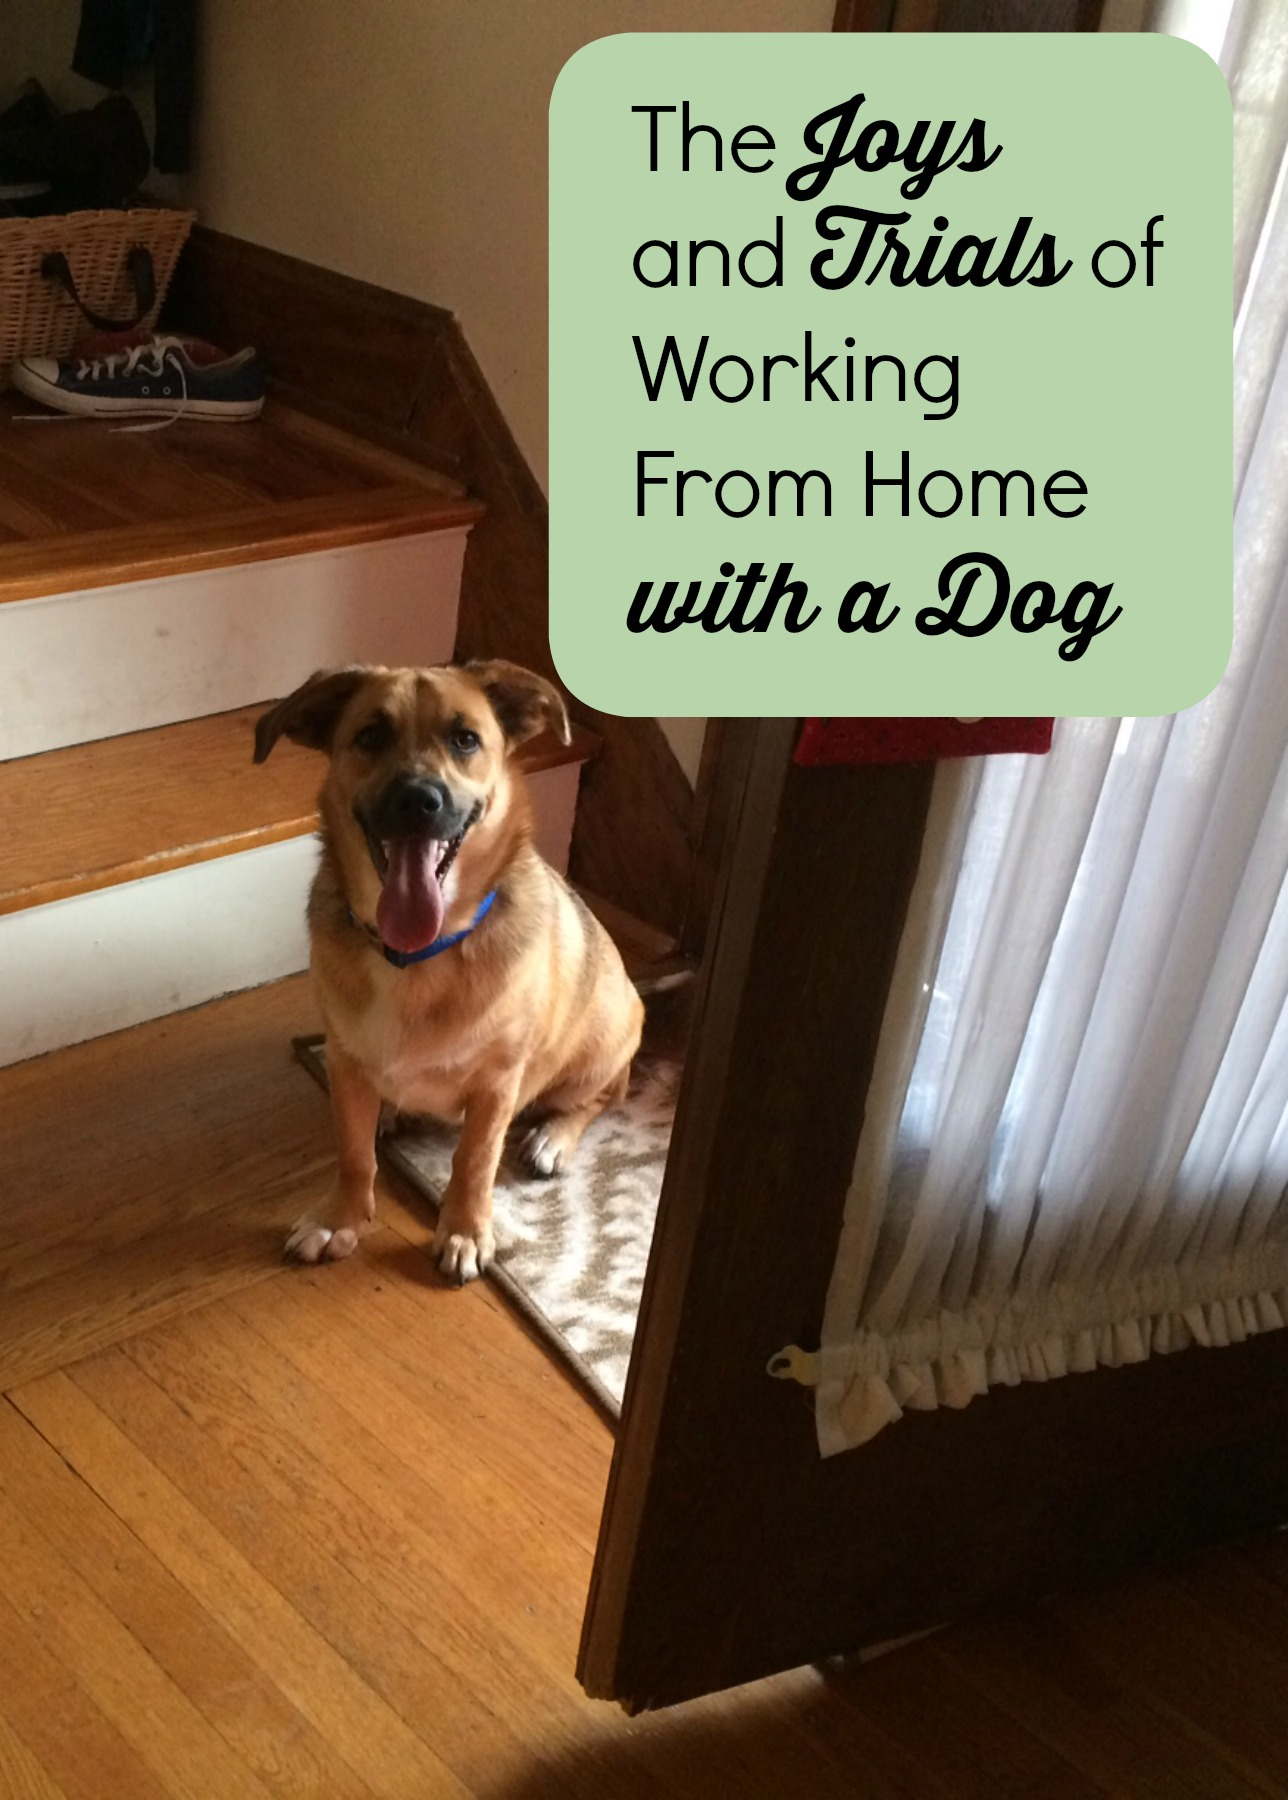 Getting a puppy can be like having another kid. I learned that working from home with a dog has its challenges and perks.